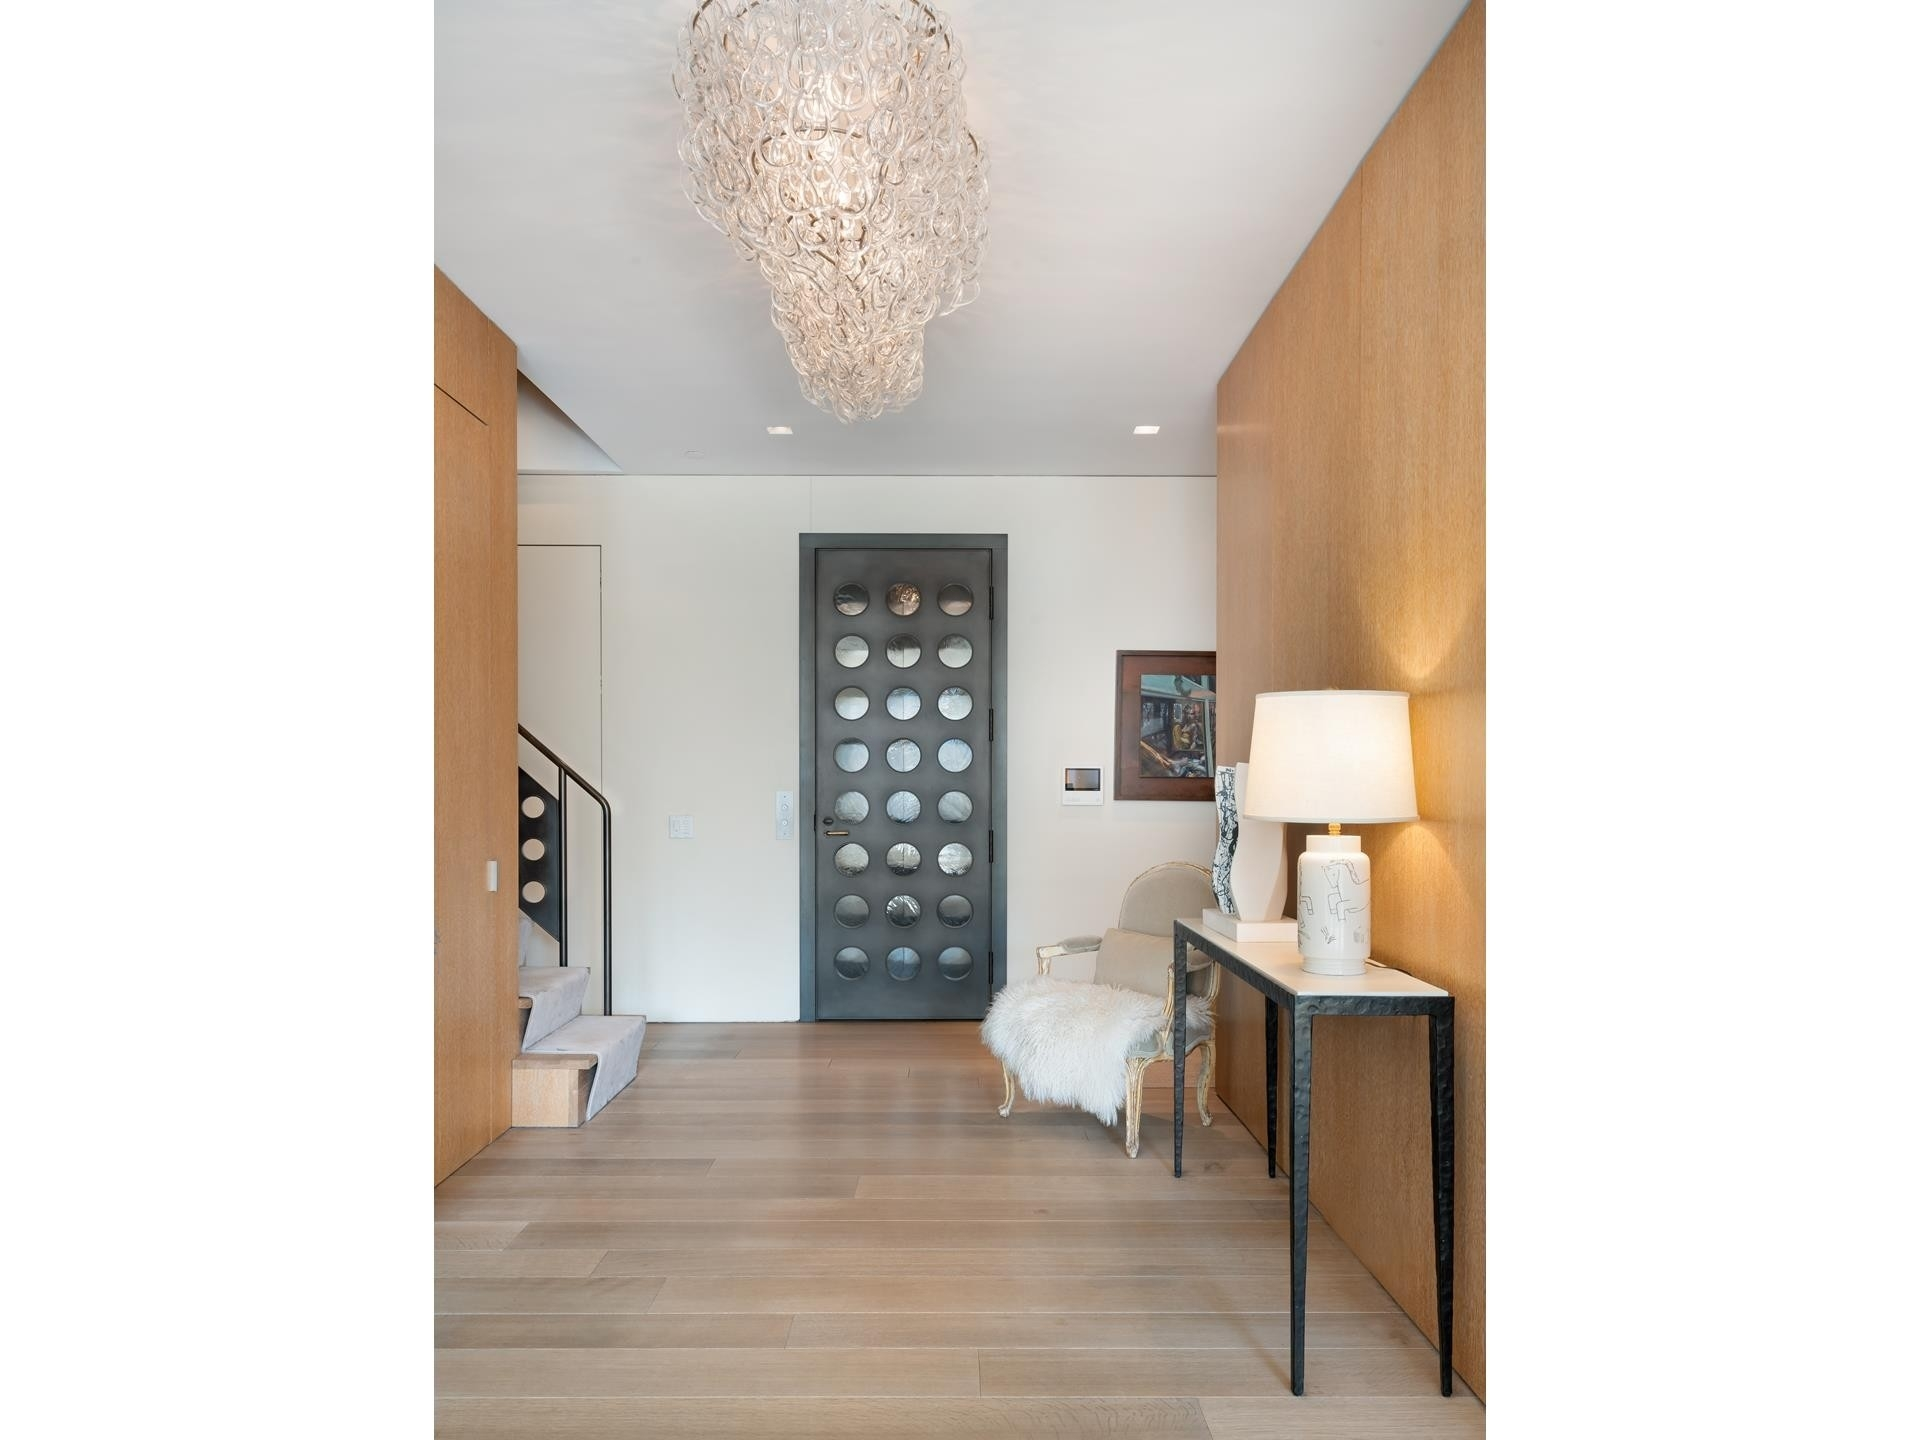 2. Condominiums for Sale at 408 GREENWICH ST , PH TriBeCa, New York, NY 10013